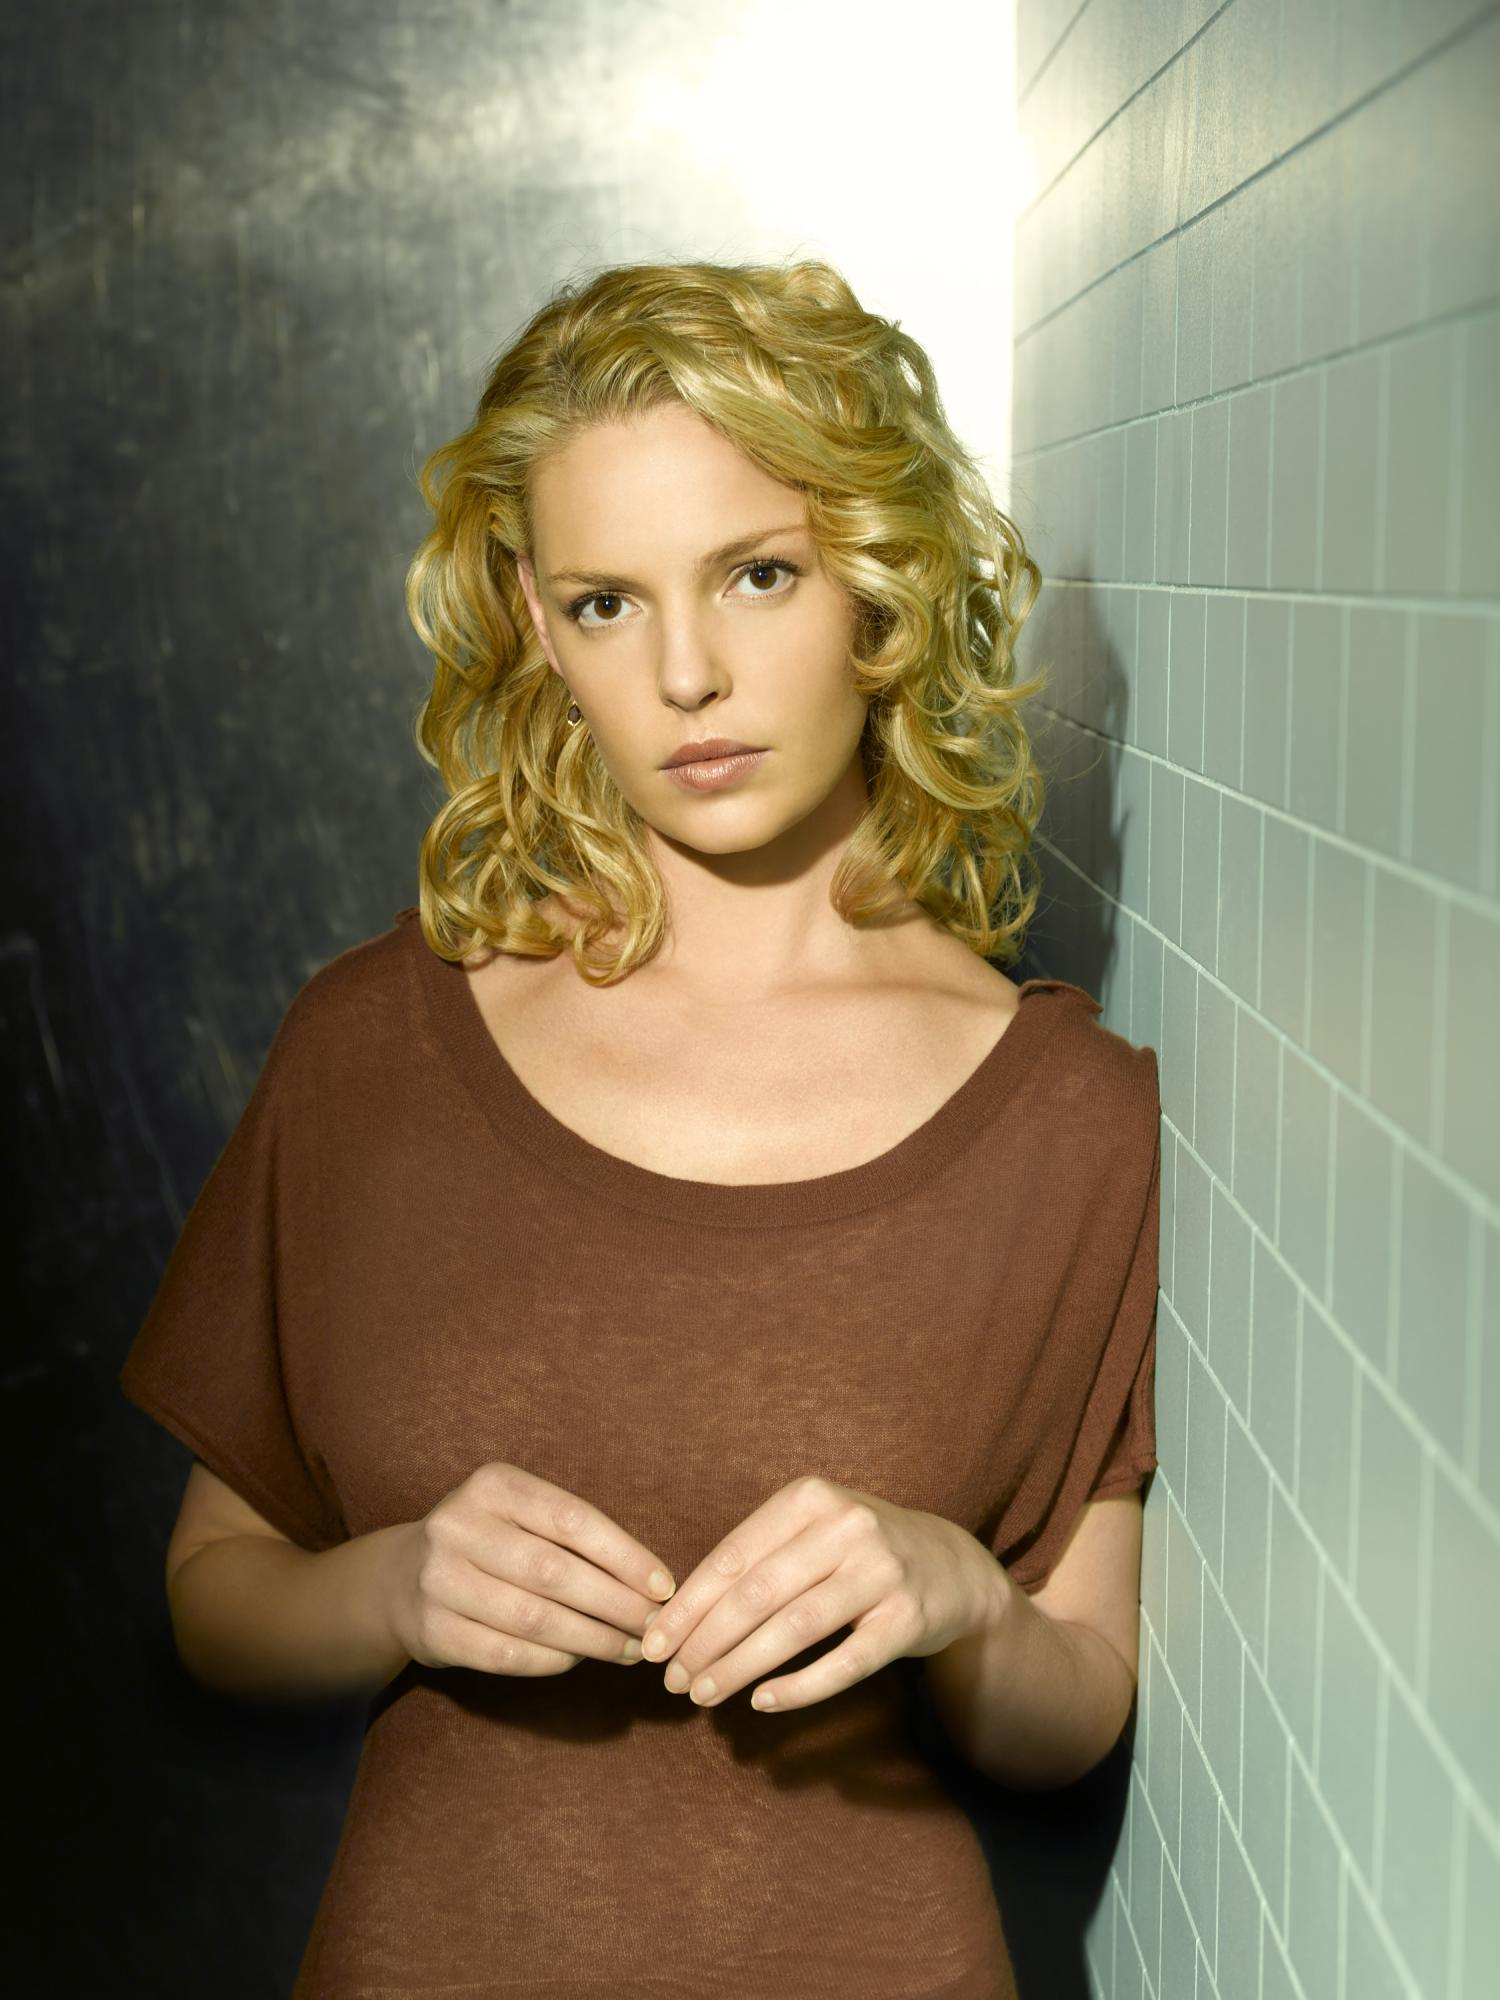 Greys Anatomy S04 Katherine Heigl 3 Dvdbash Dvdbash